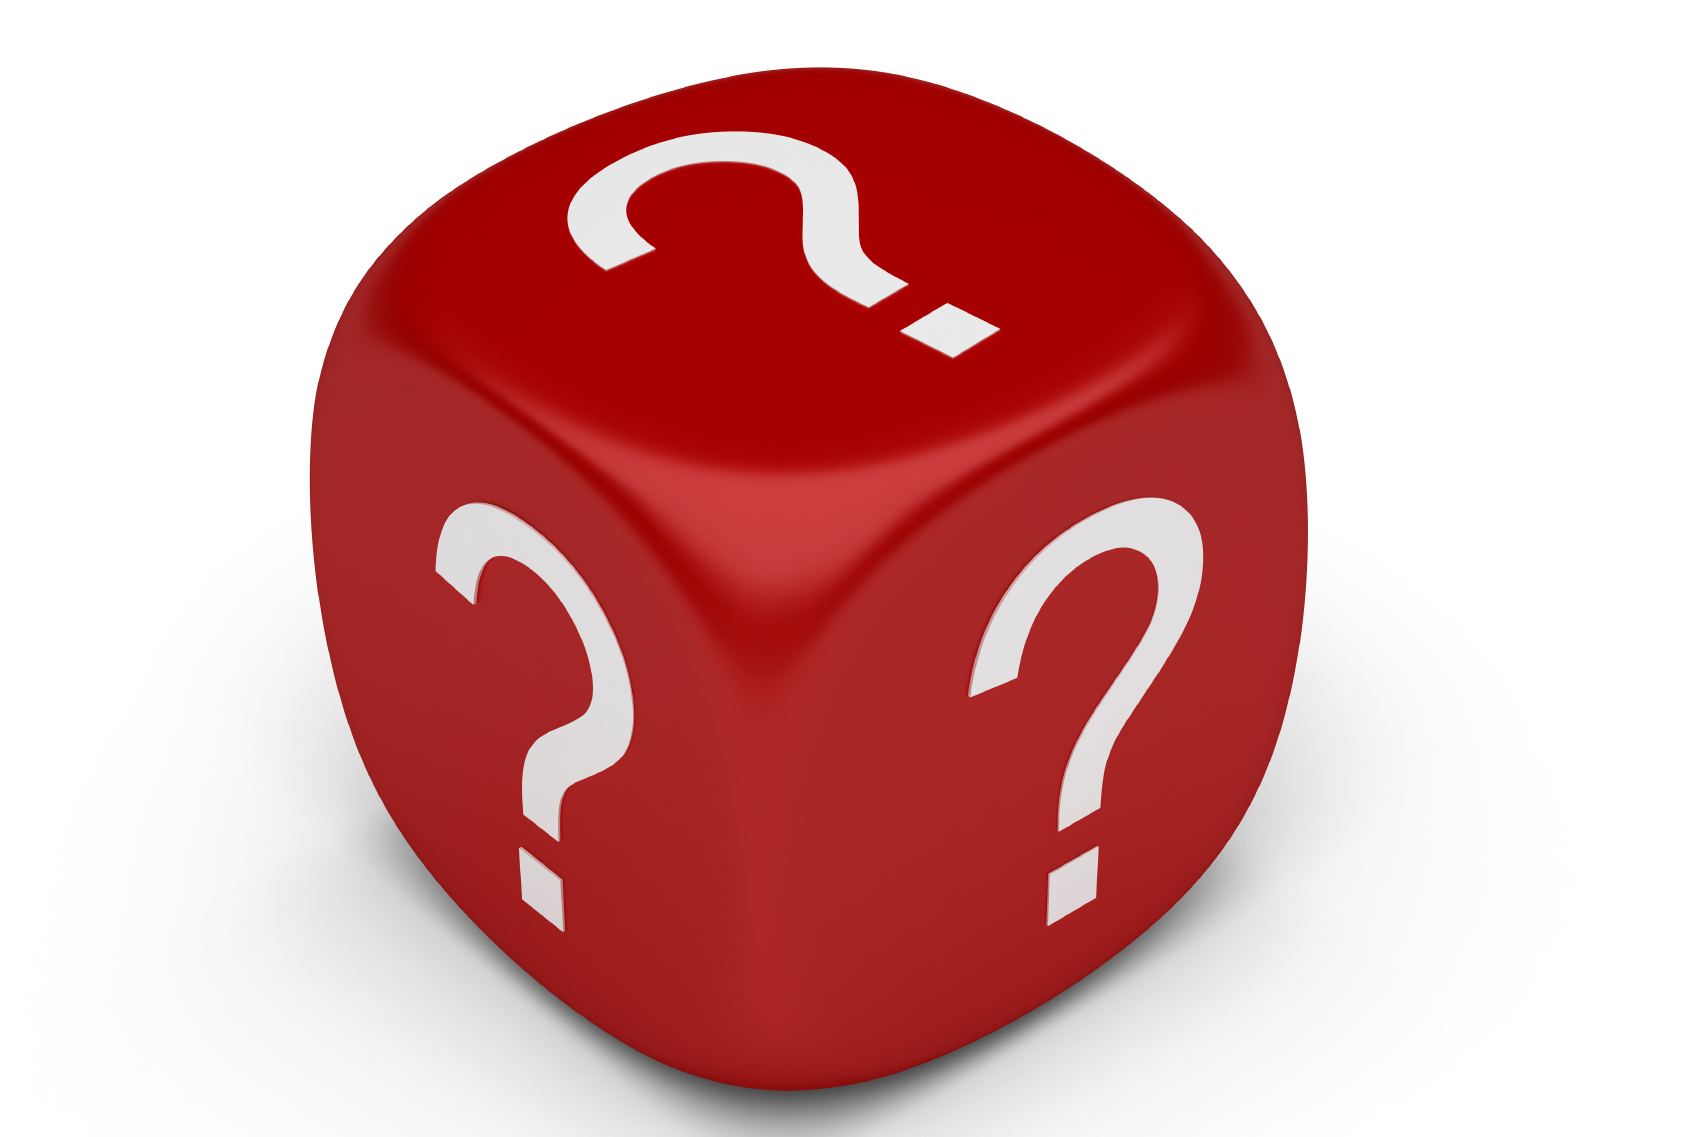 Free Question Mark Images, Download Free Clip Art, Free